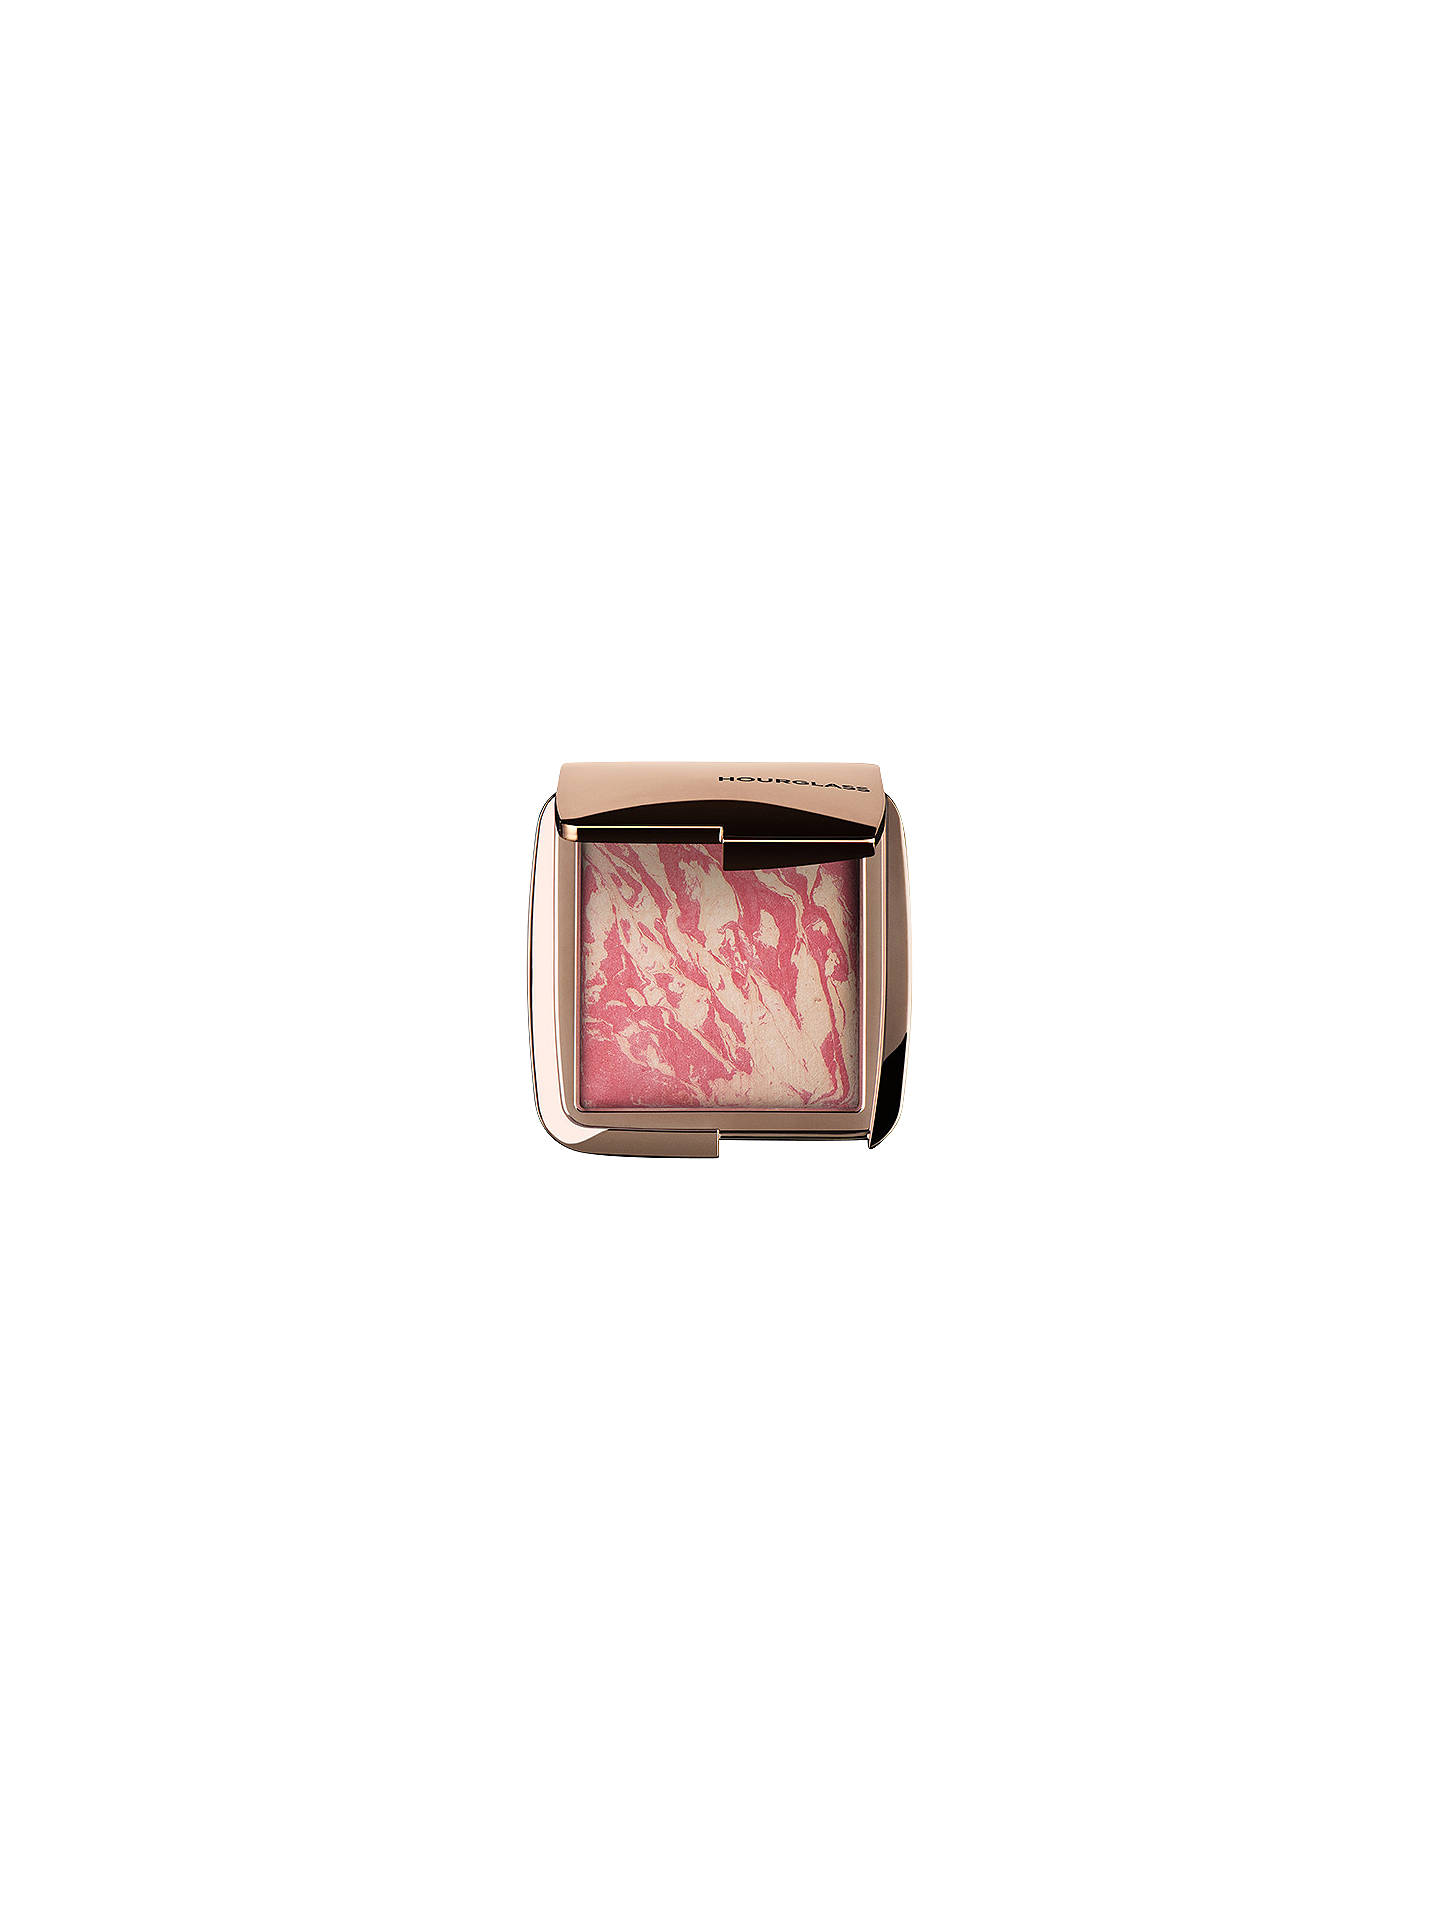 BuyHourglass Ambient Lighting Blush, Diffused Heat Online at johnlewis.com